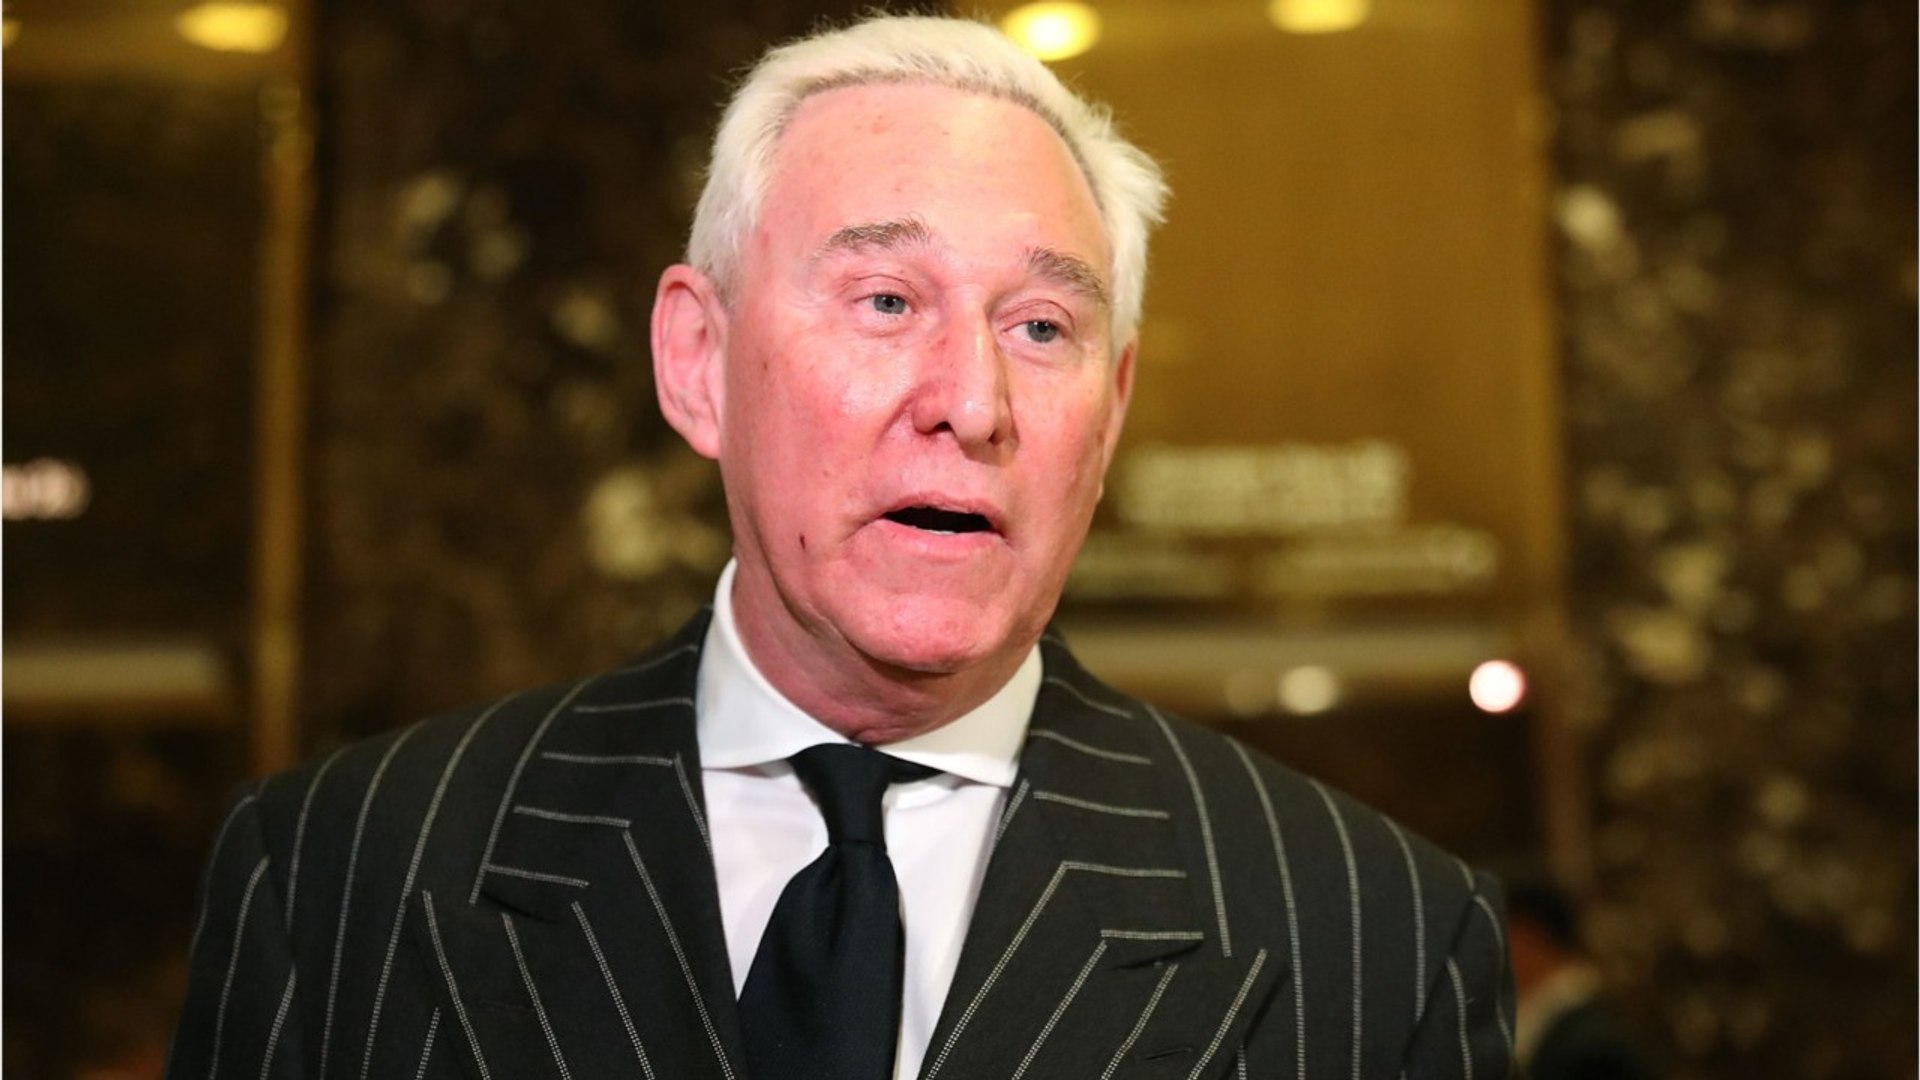 Trump Supporter Roger Stone Banned From Twitter